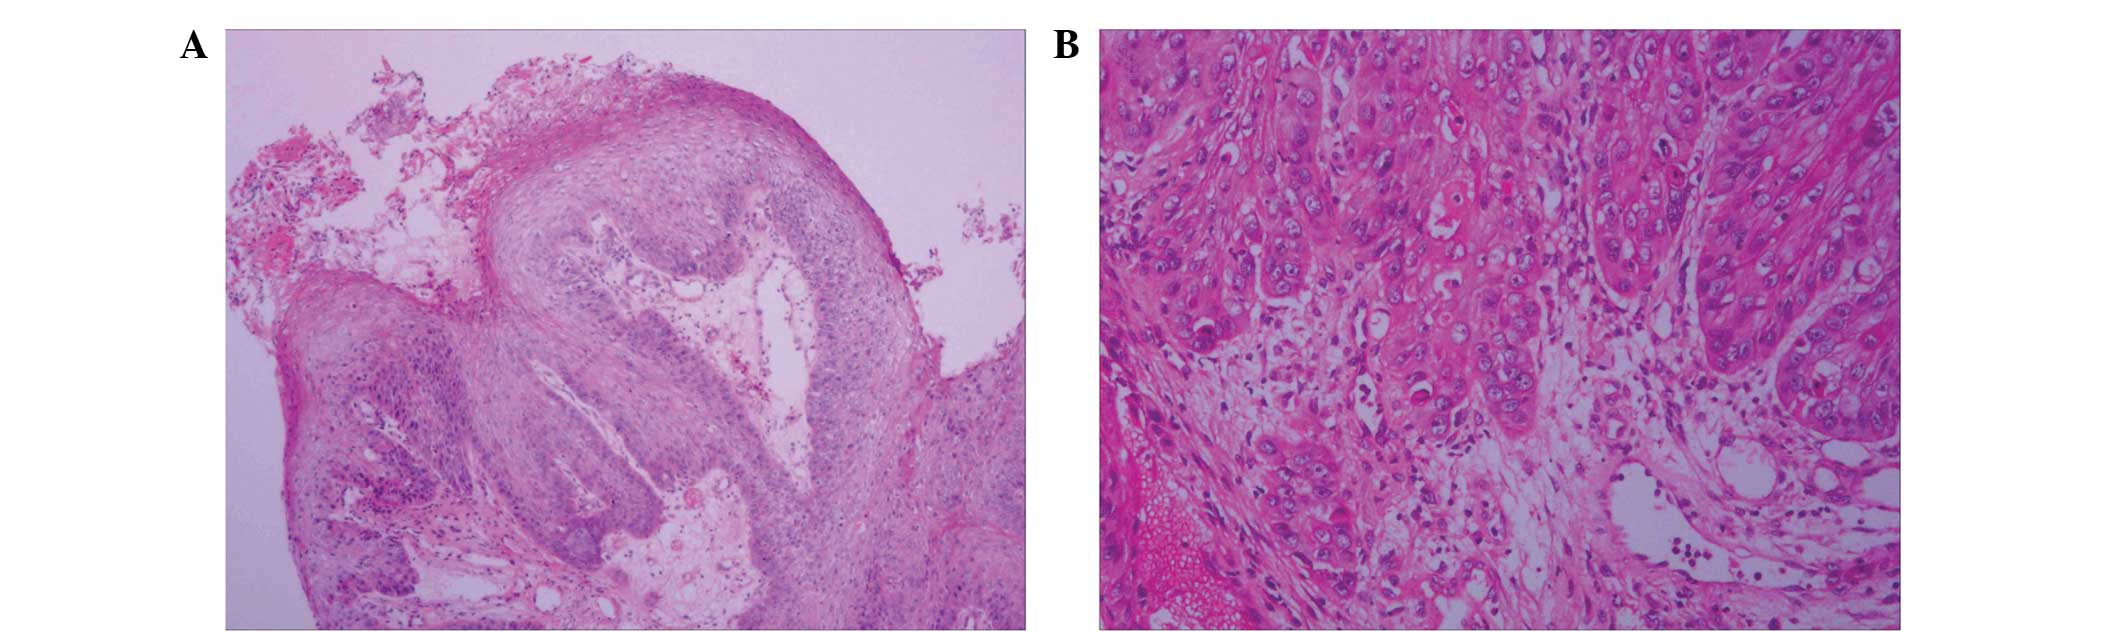 squamous papilloma with atypical cancer bucal resumen